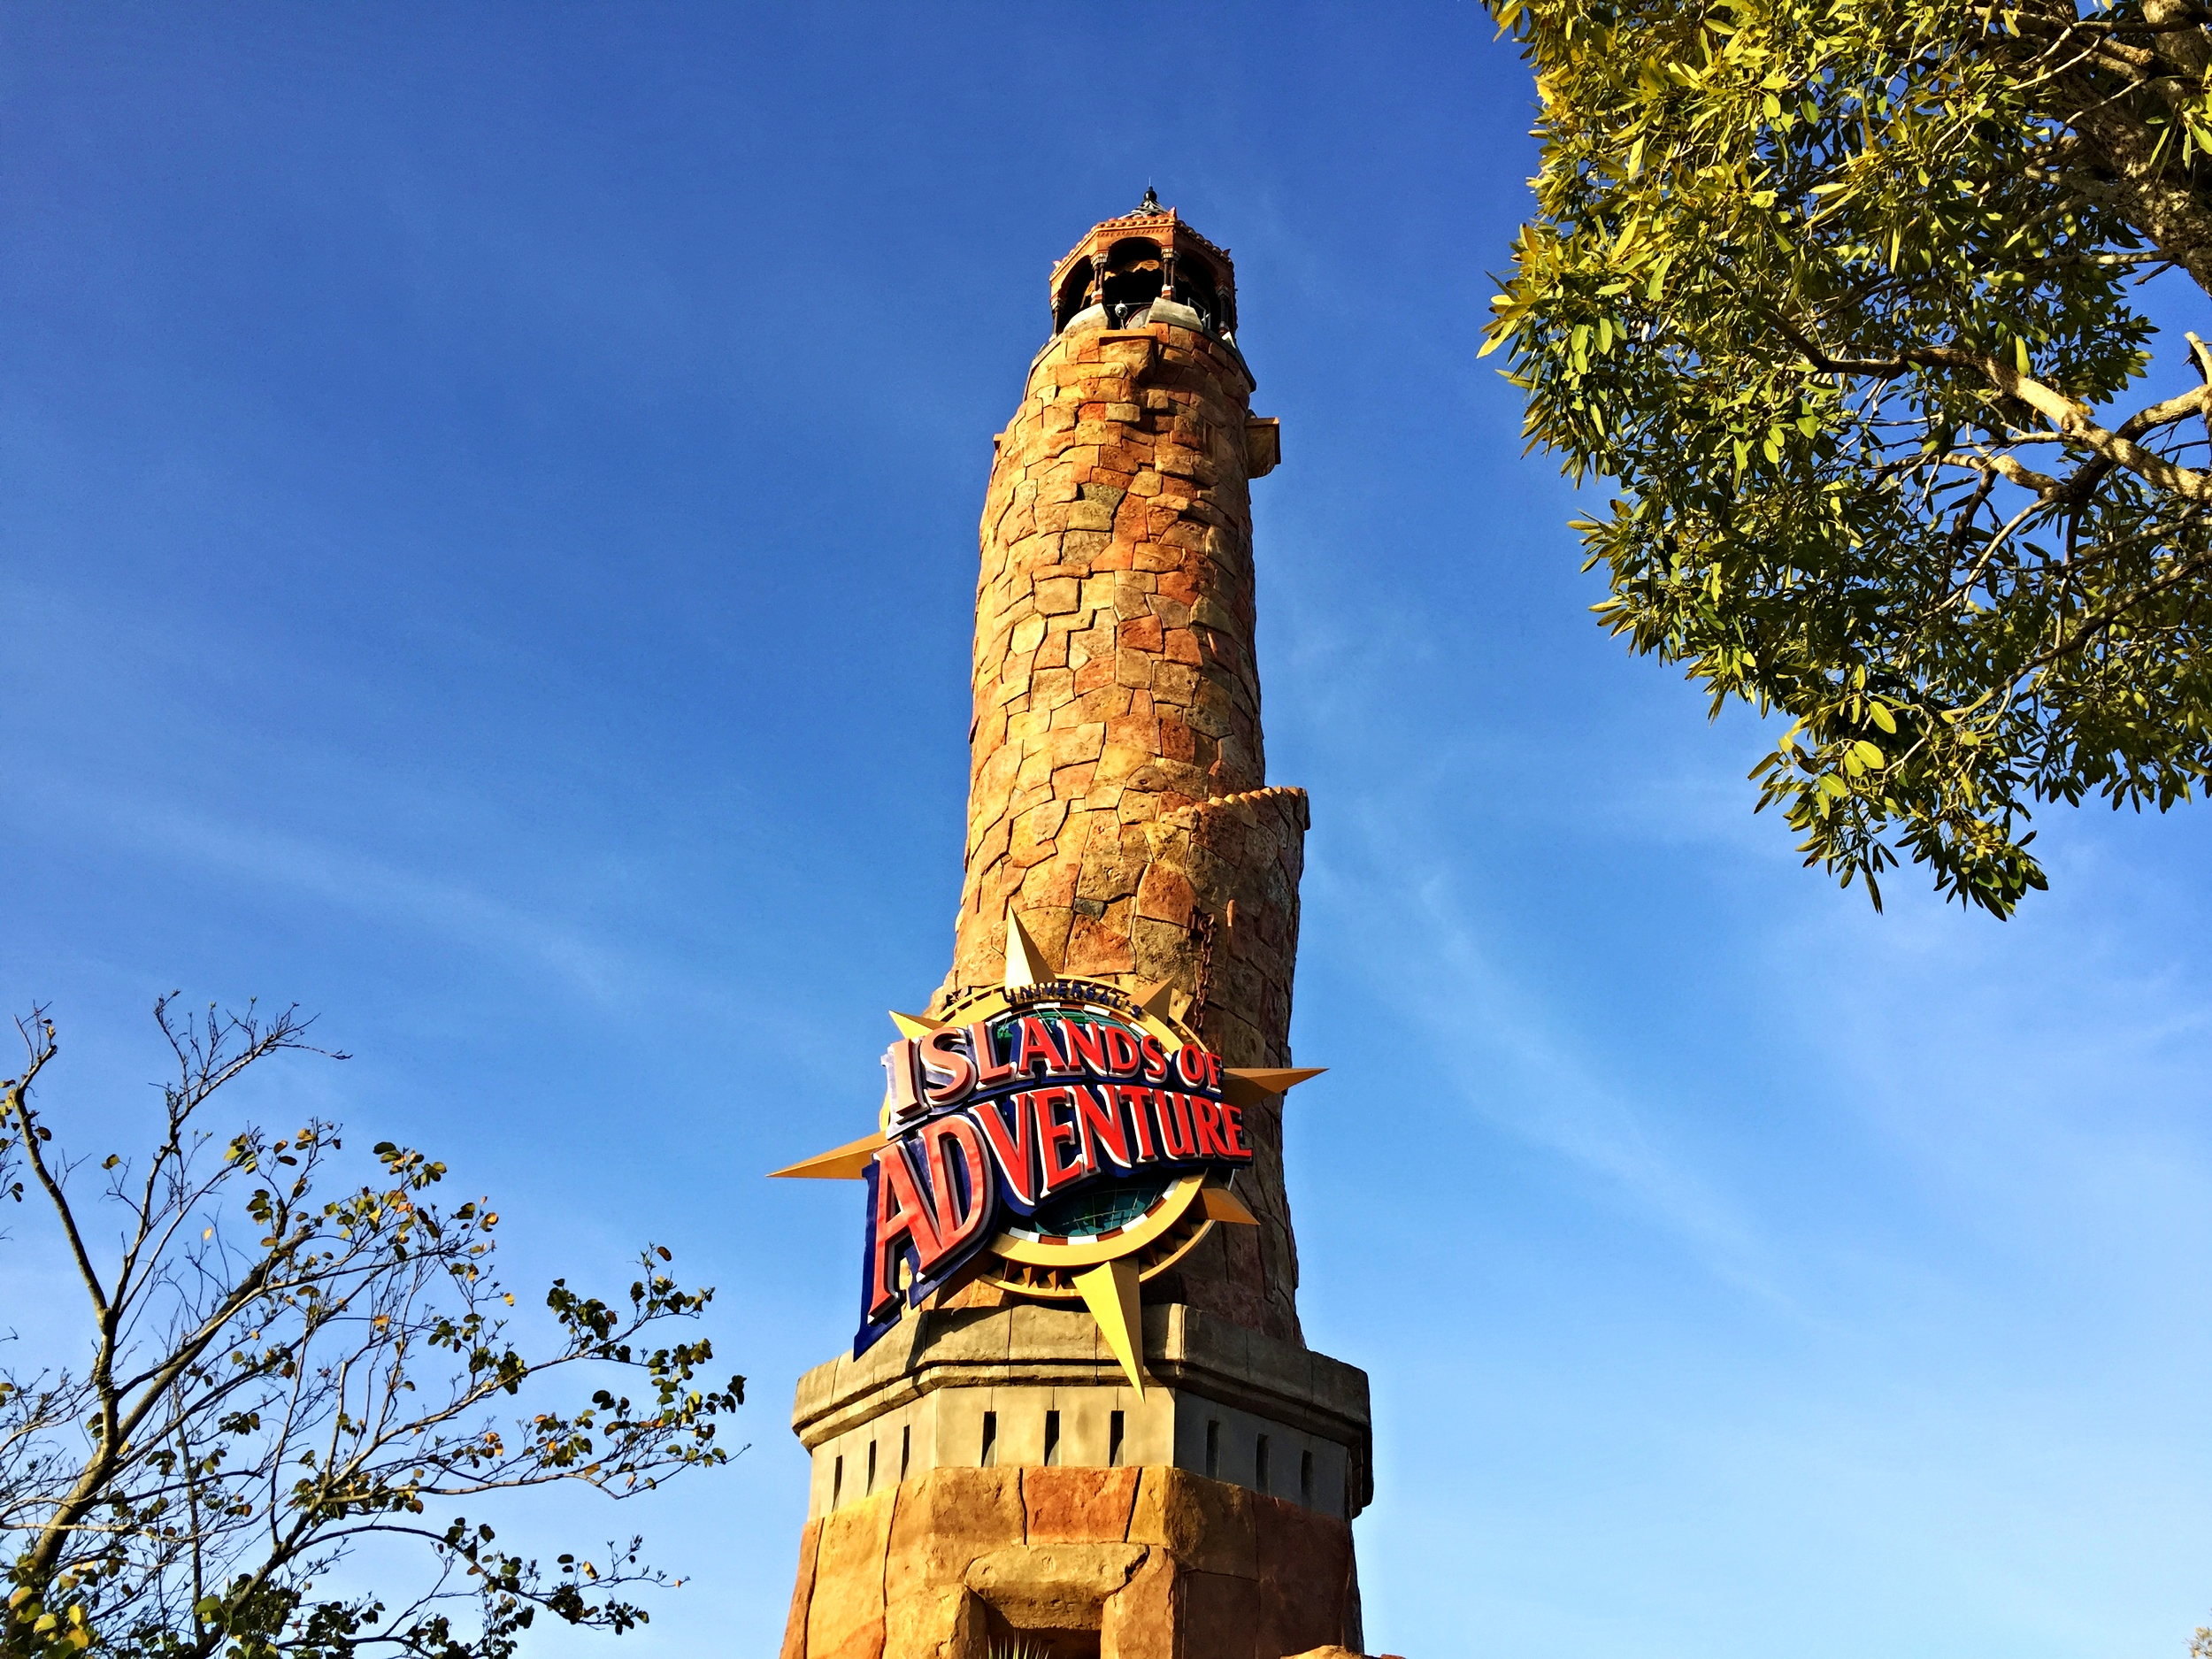 Learn about every ride, show, and restaurant in Universal's Islands of Adventure.